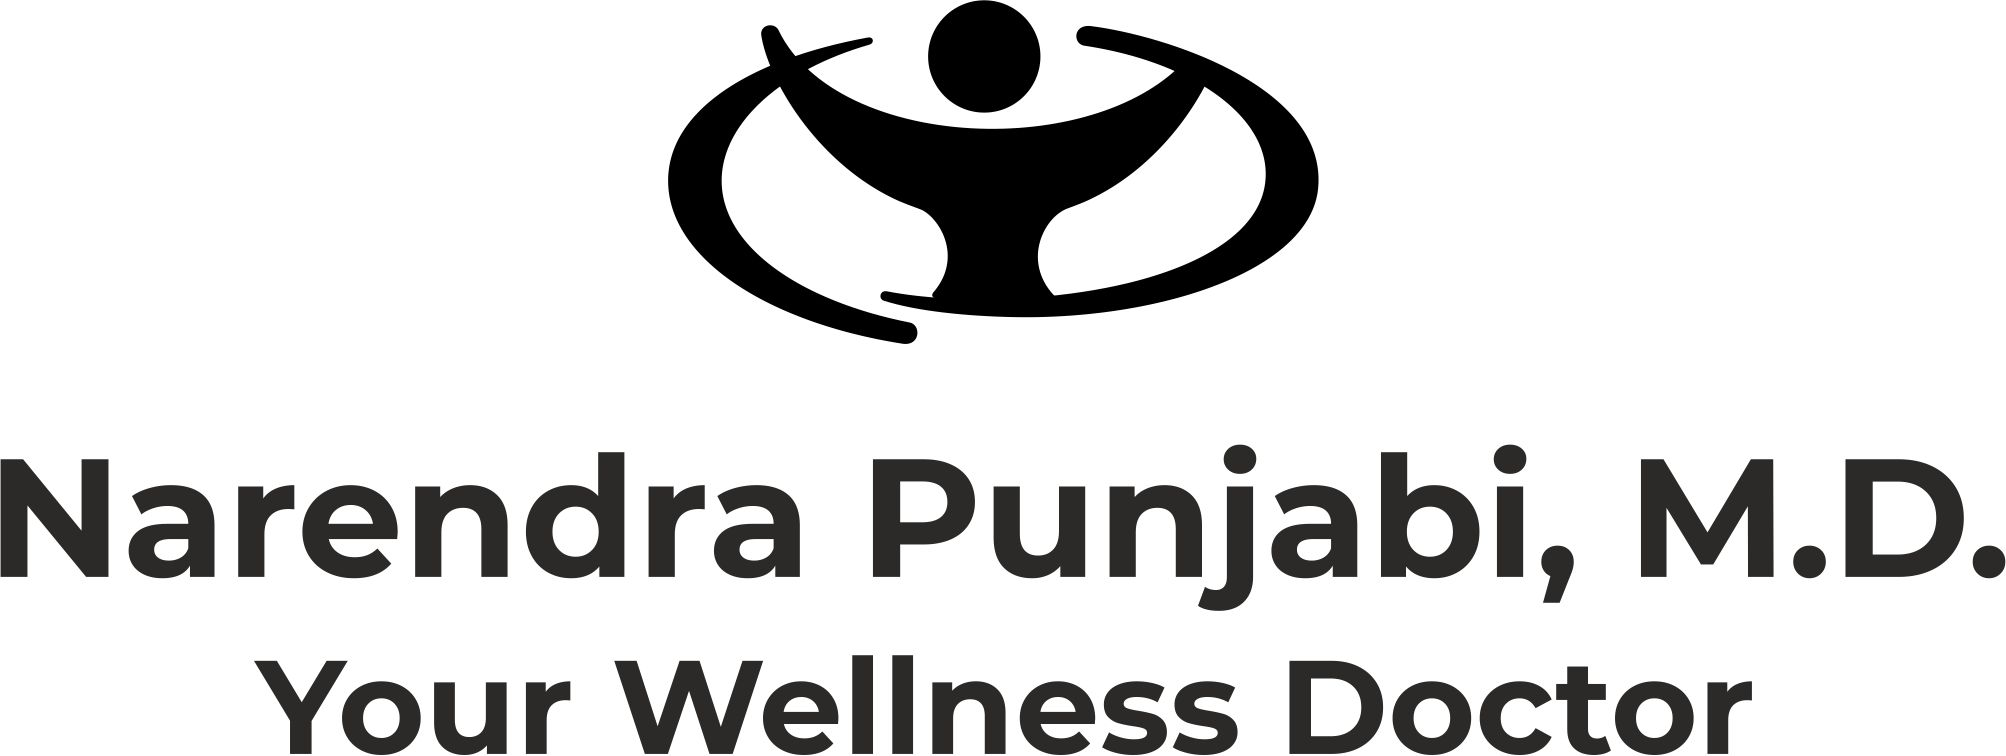 Punjabi Medical Clinic: Narendra Punjabi, M.D.